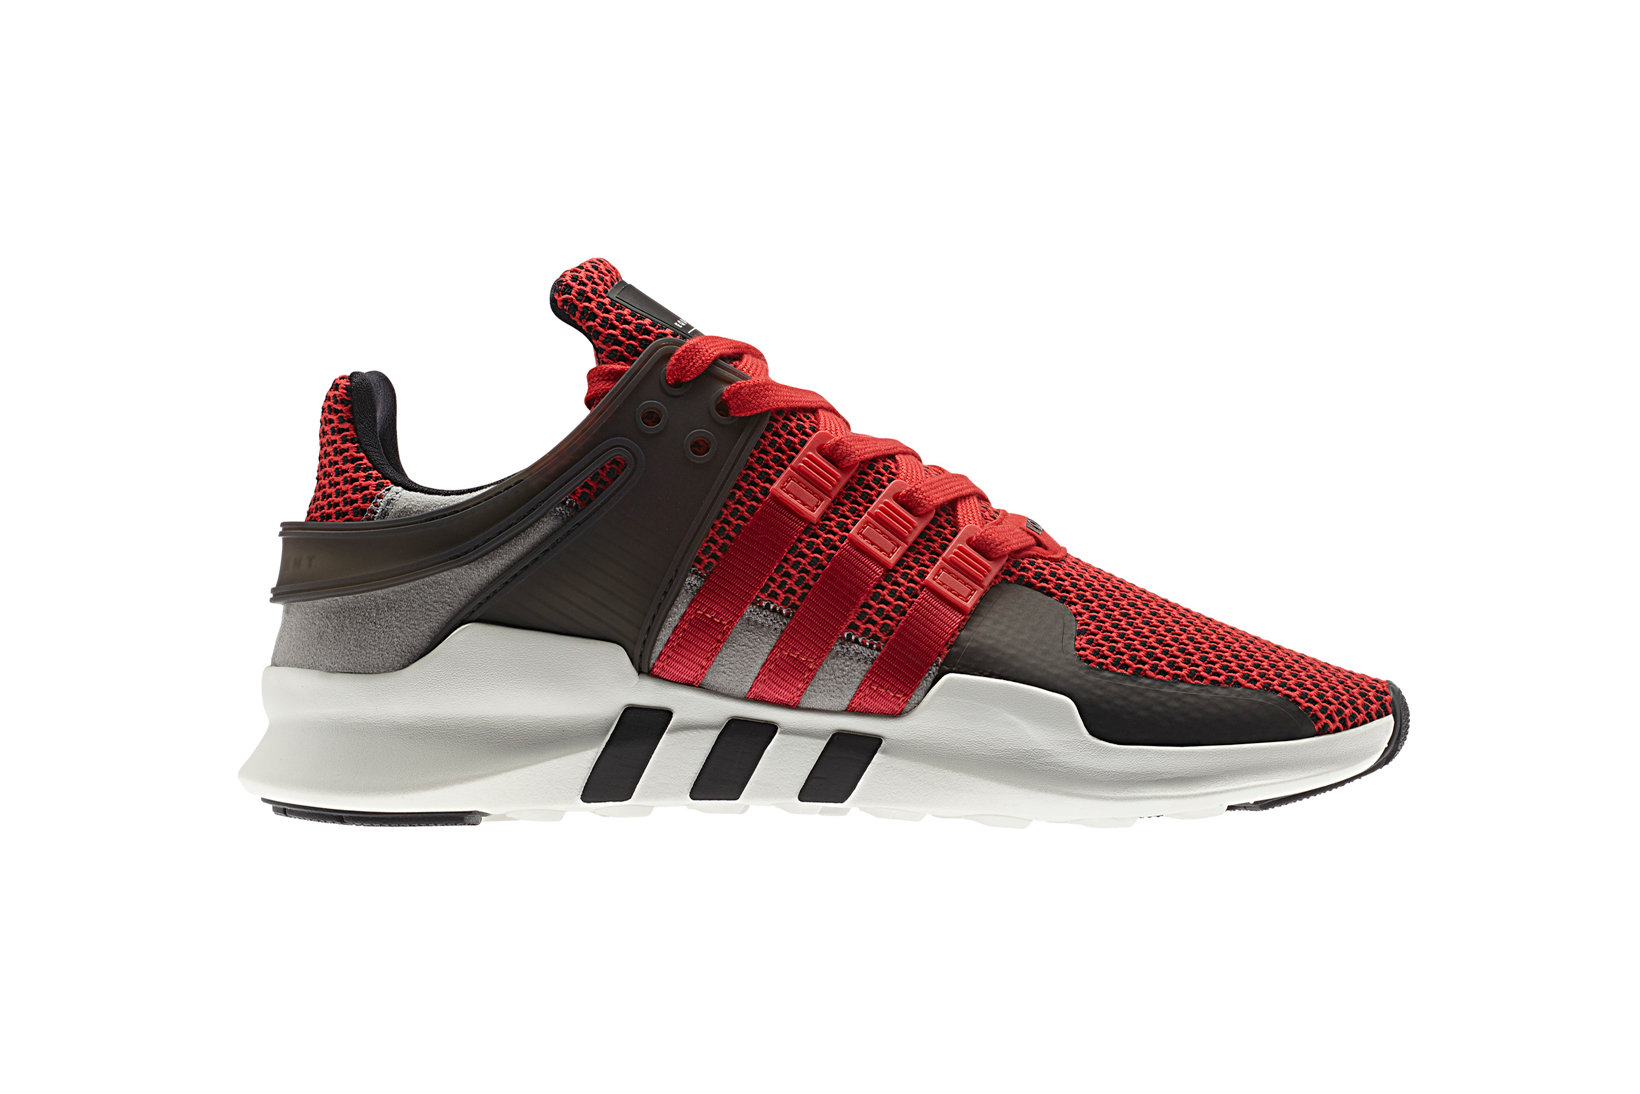 best cheap fbc50 6dc54 adidas Originals Wraps the EQT Support ADV Primeknit in Grey  Burgundy